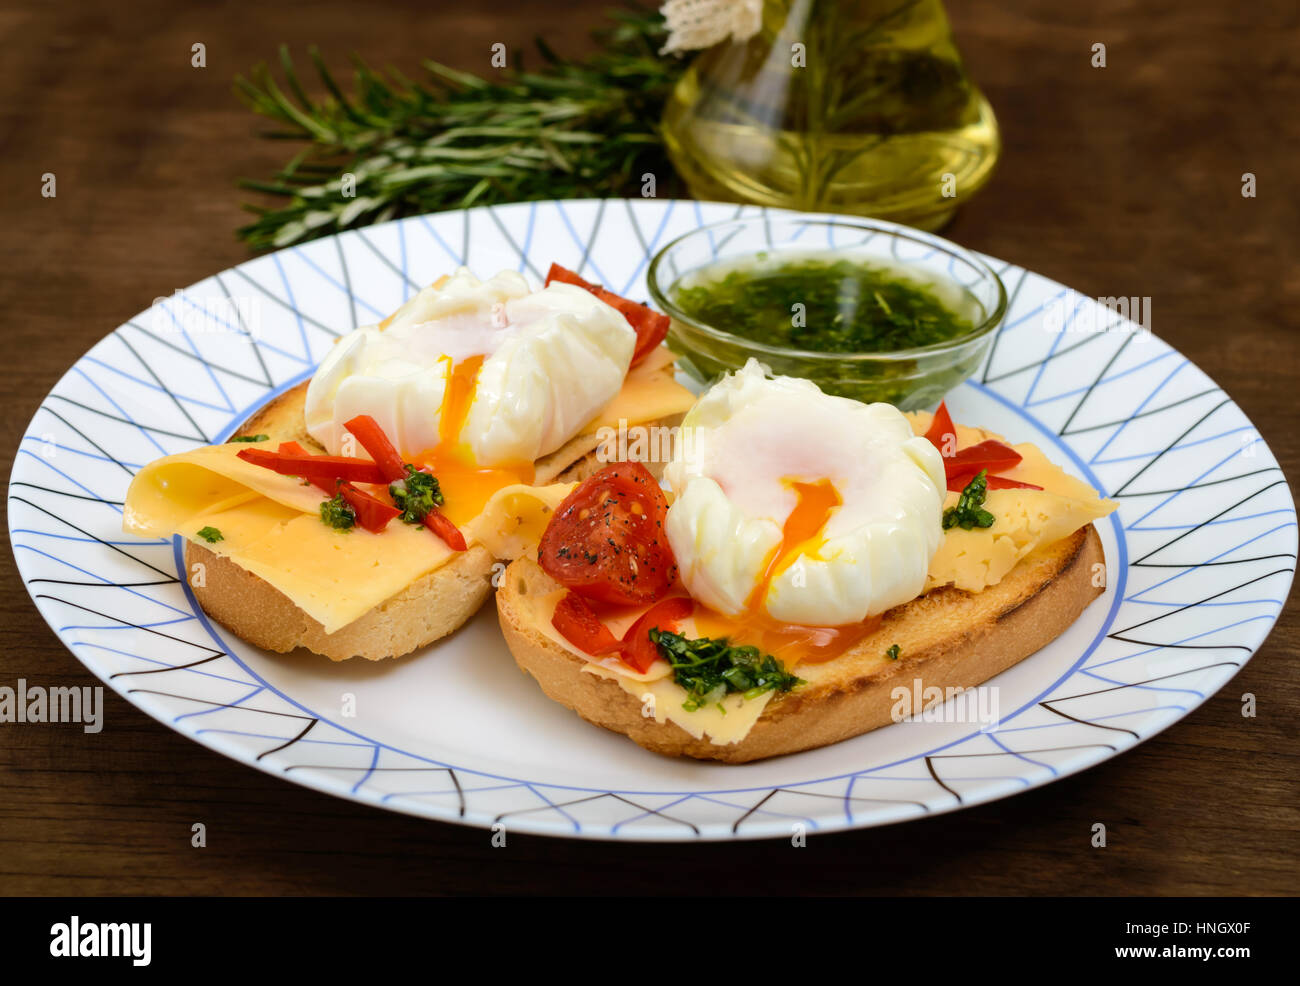 Crispy toast with poached egg, cheese, peppers, tomatoes, souse on a plate on a dark wooden background. Close up - Stock Image